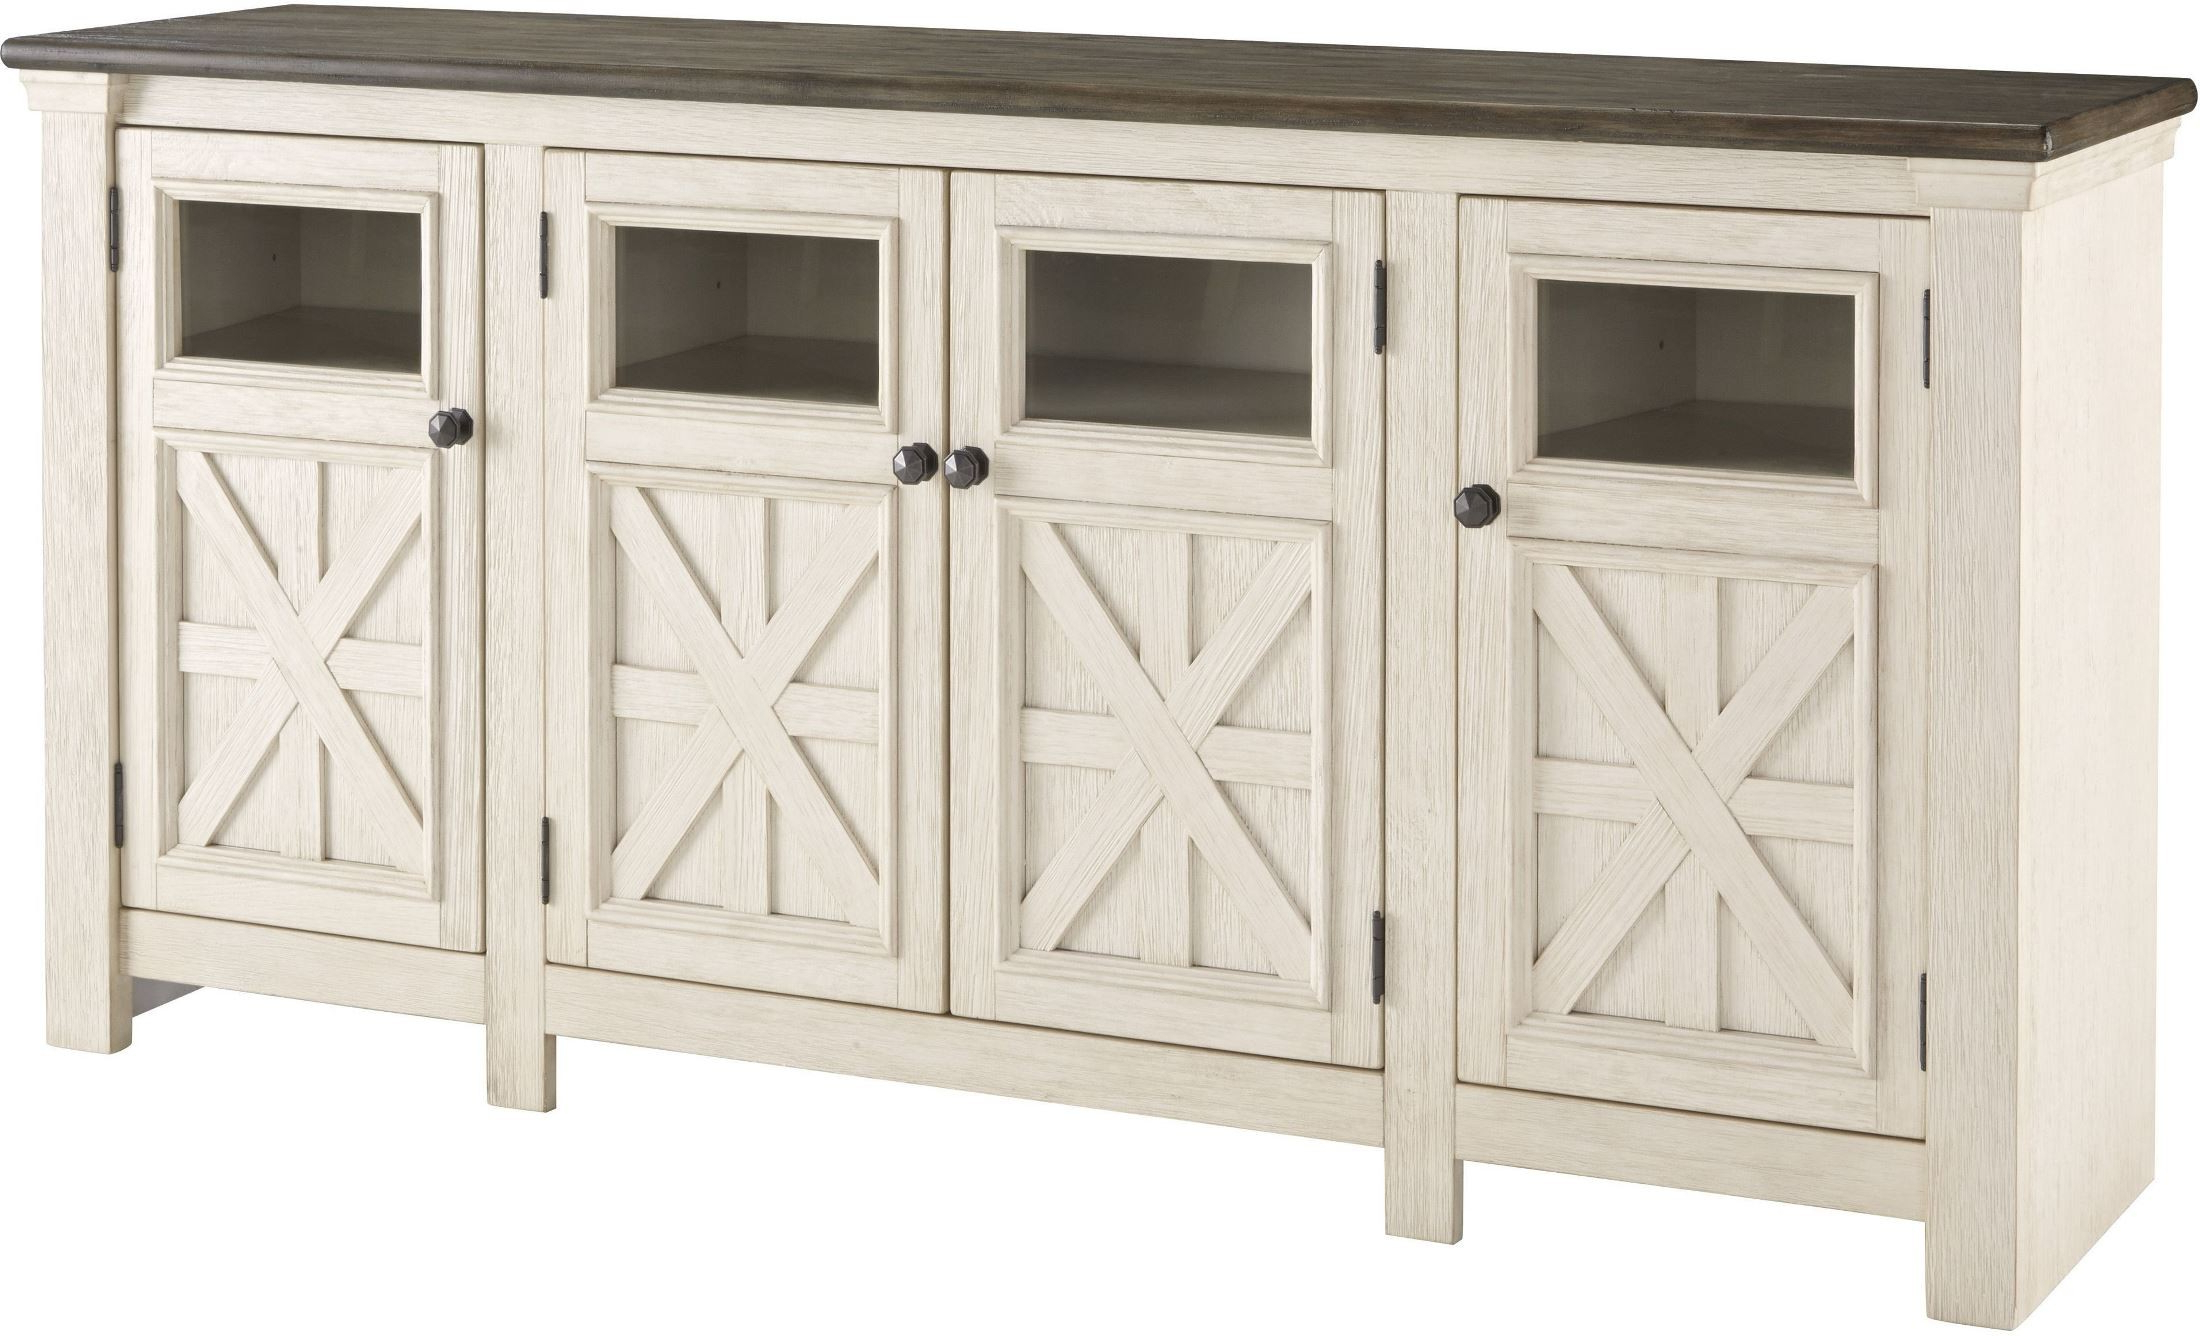 Bolanburg Weathered Gray Extra Large Tv Stand From Ashley (View 18 of 20)